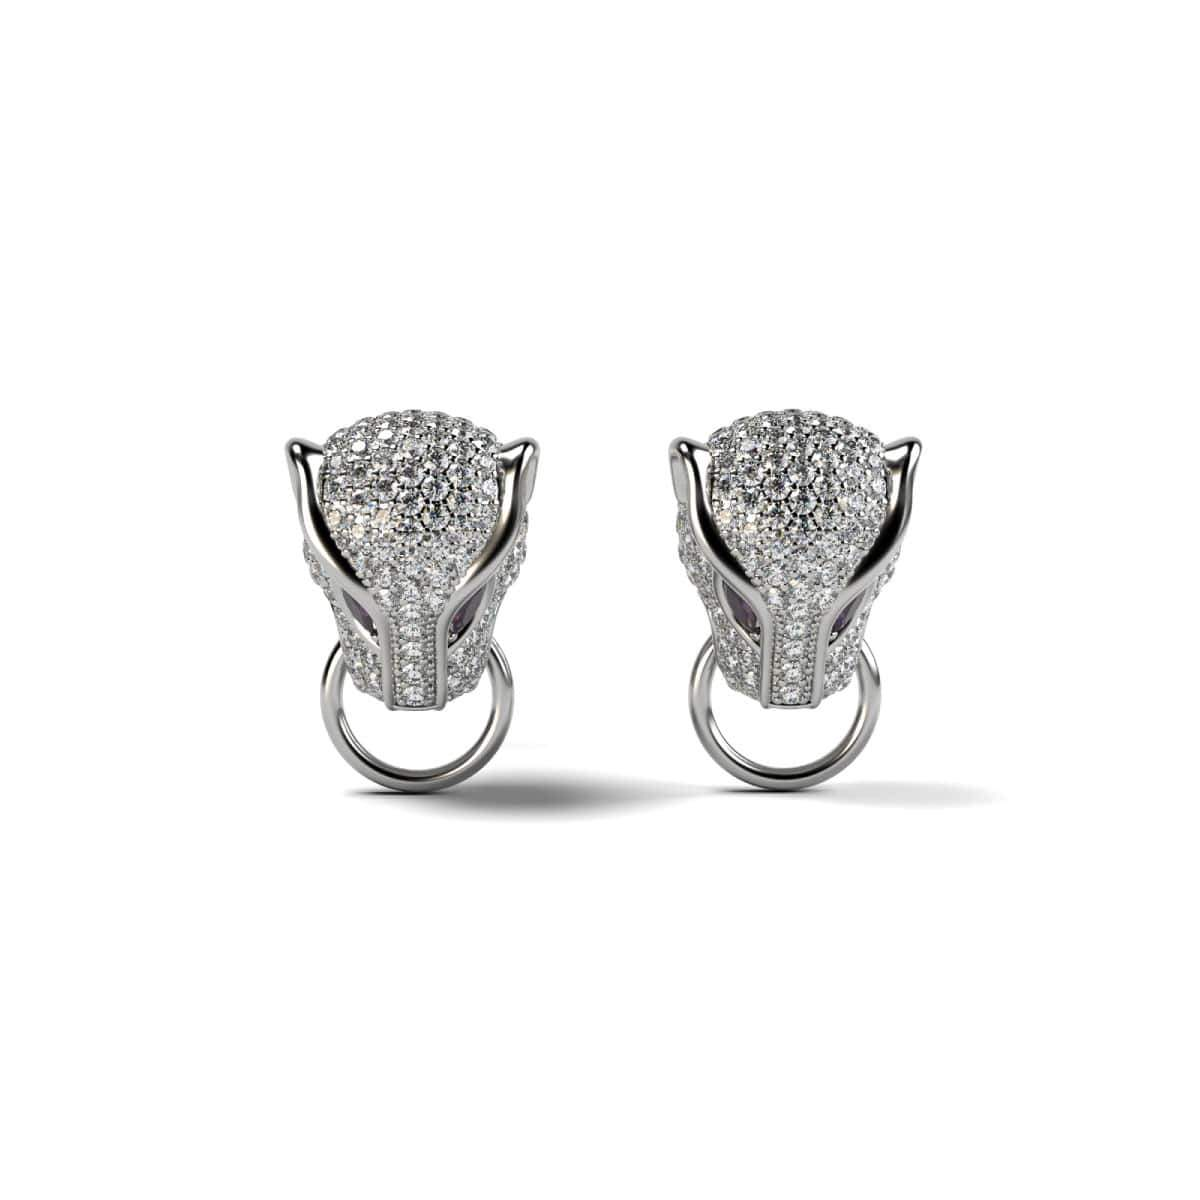 Panthera by Keysi Sayago | 18k White Gold | Cubic Zirconia Crystal Earrings